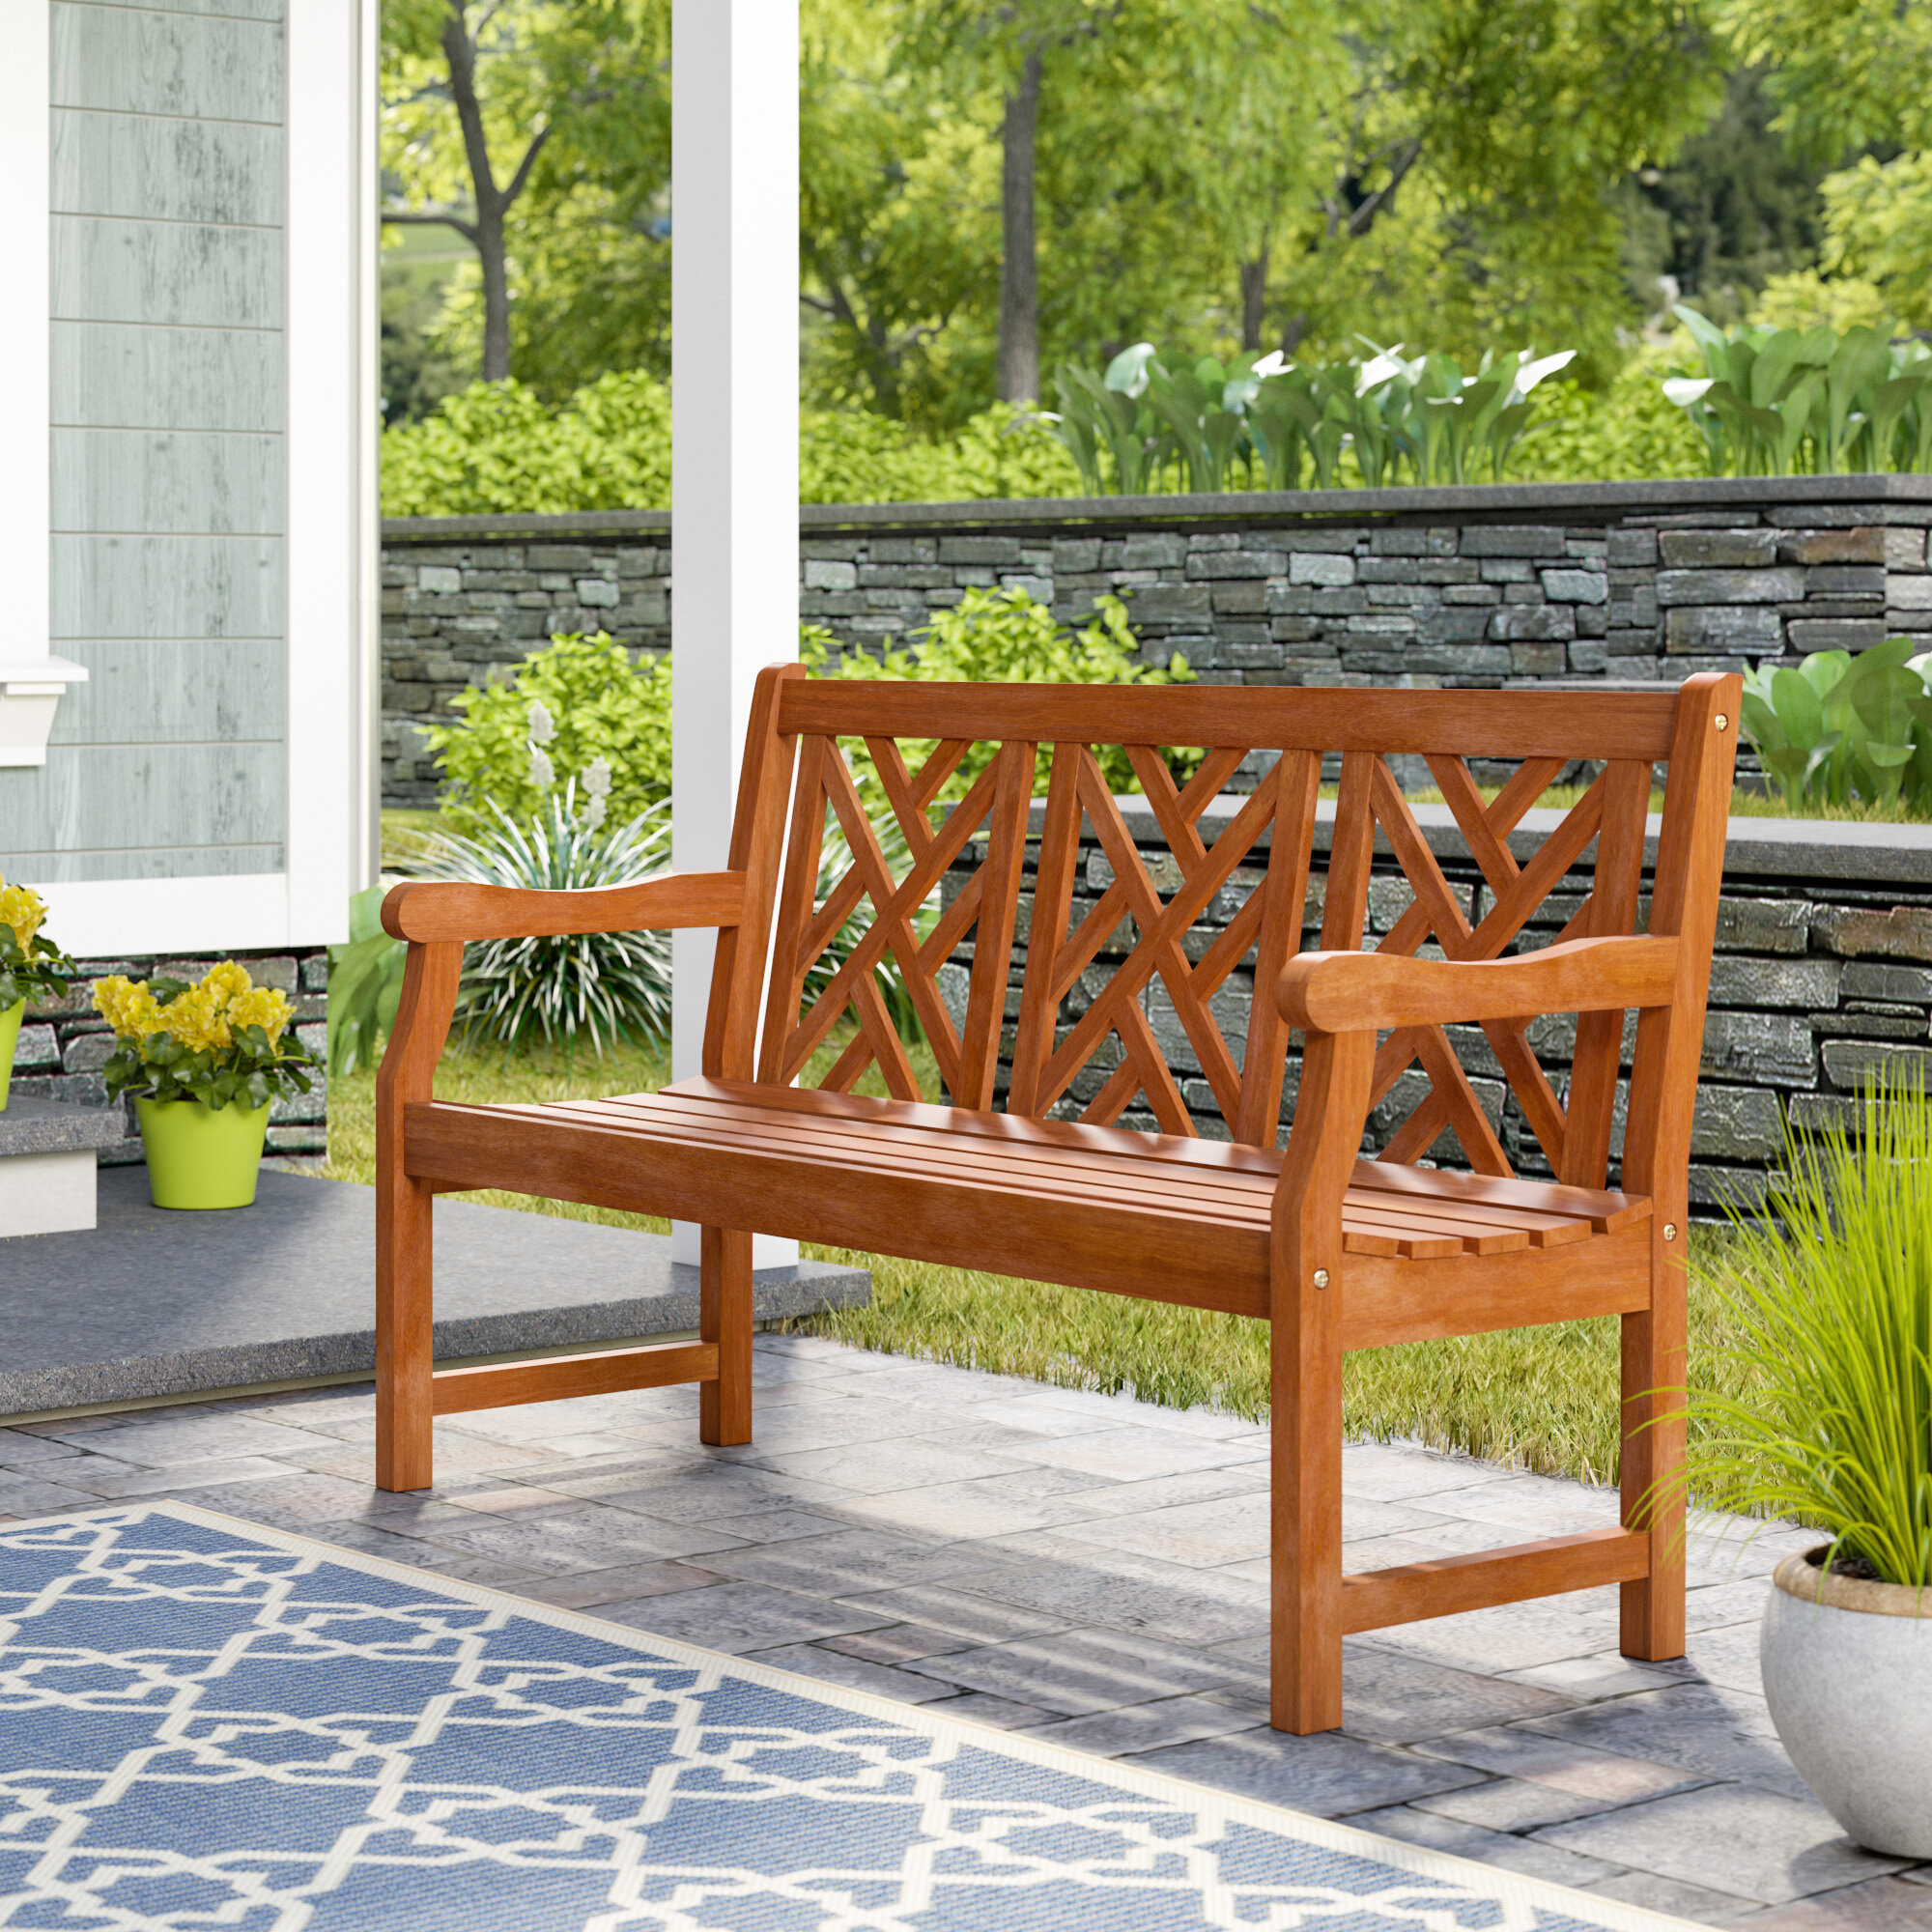 Curved Outdoor Outdoor Benches You'Ll Love In 2020 | Wayfair With Regard To Aranita Tree Of Life Iron Garden Benches (View 15 of 25)